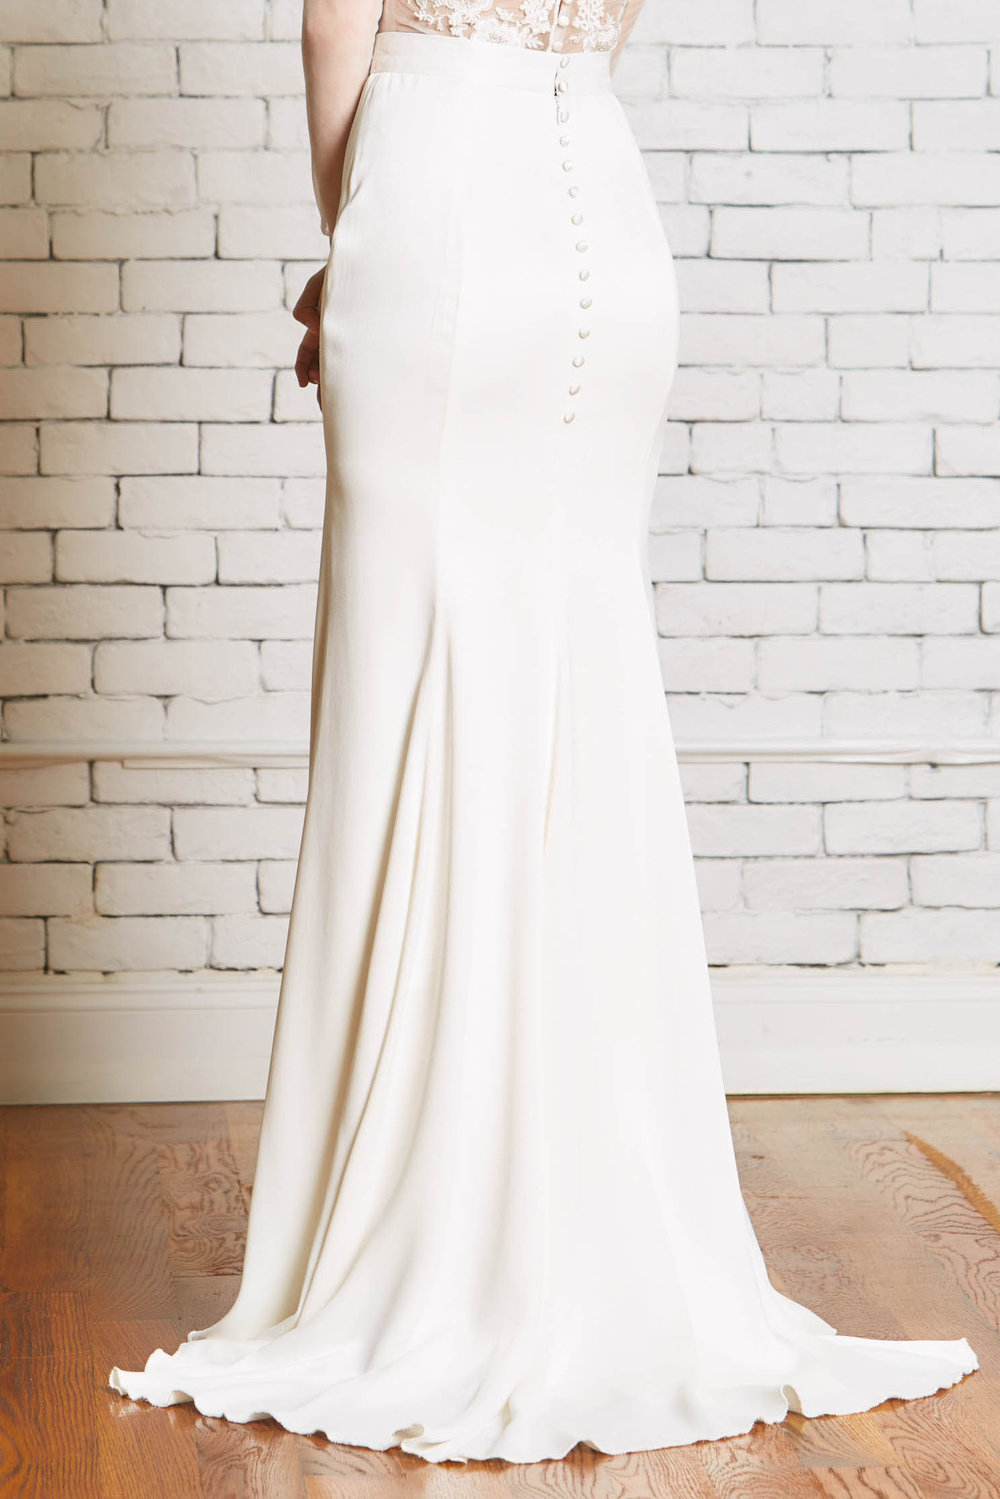 14b.Rebecca_Schoneveld_Alma_Skirt_Back-Bridal_Separates_Skirt_Sophisticated.jpg